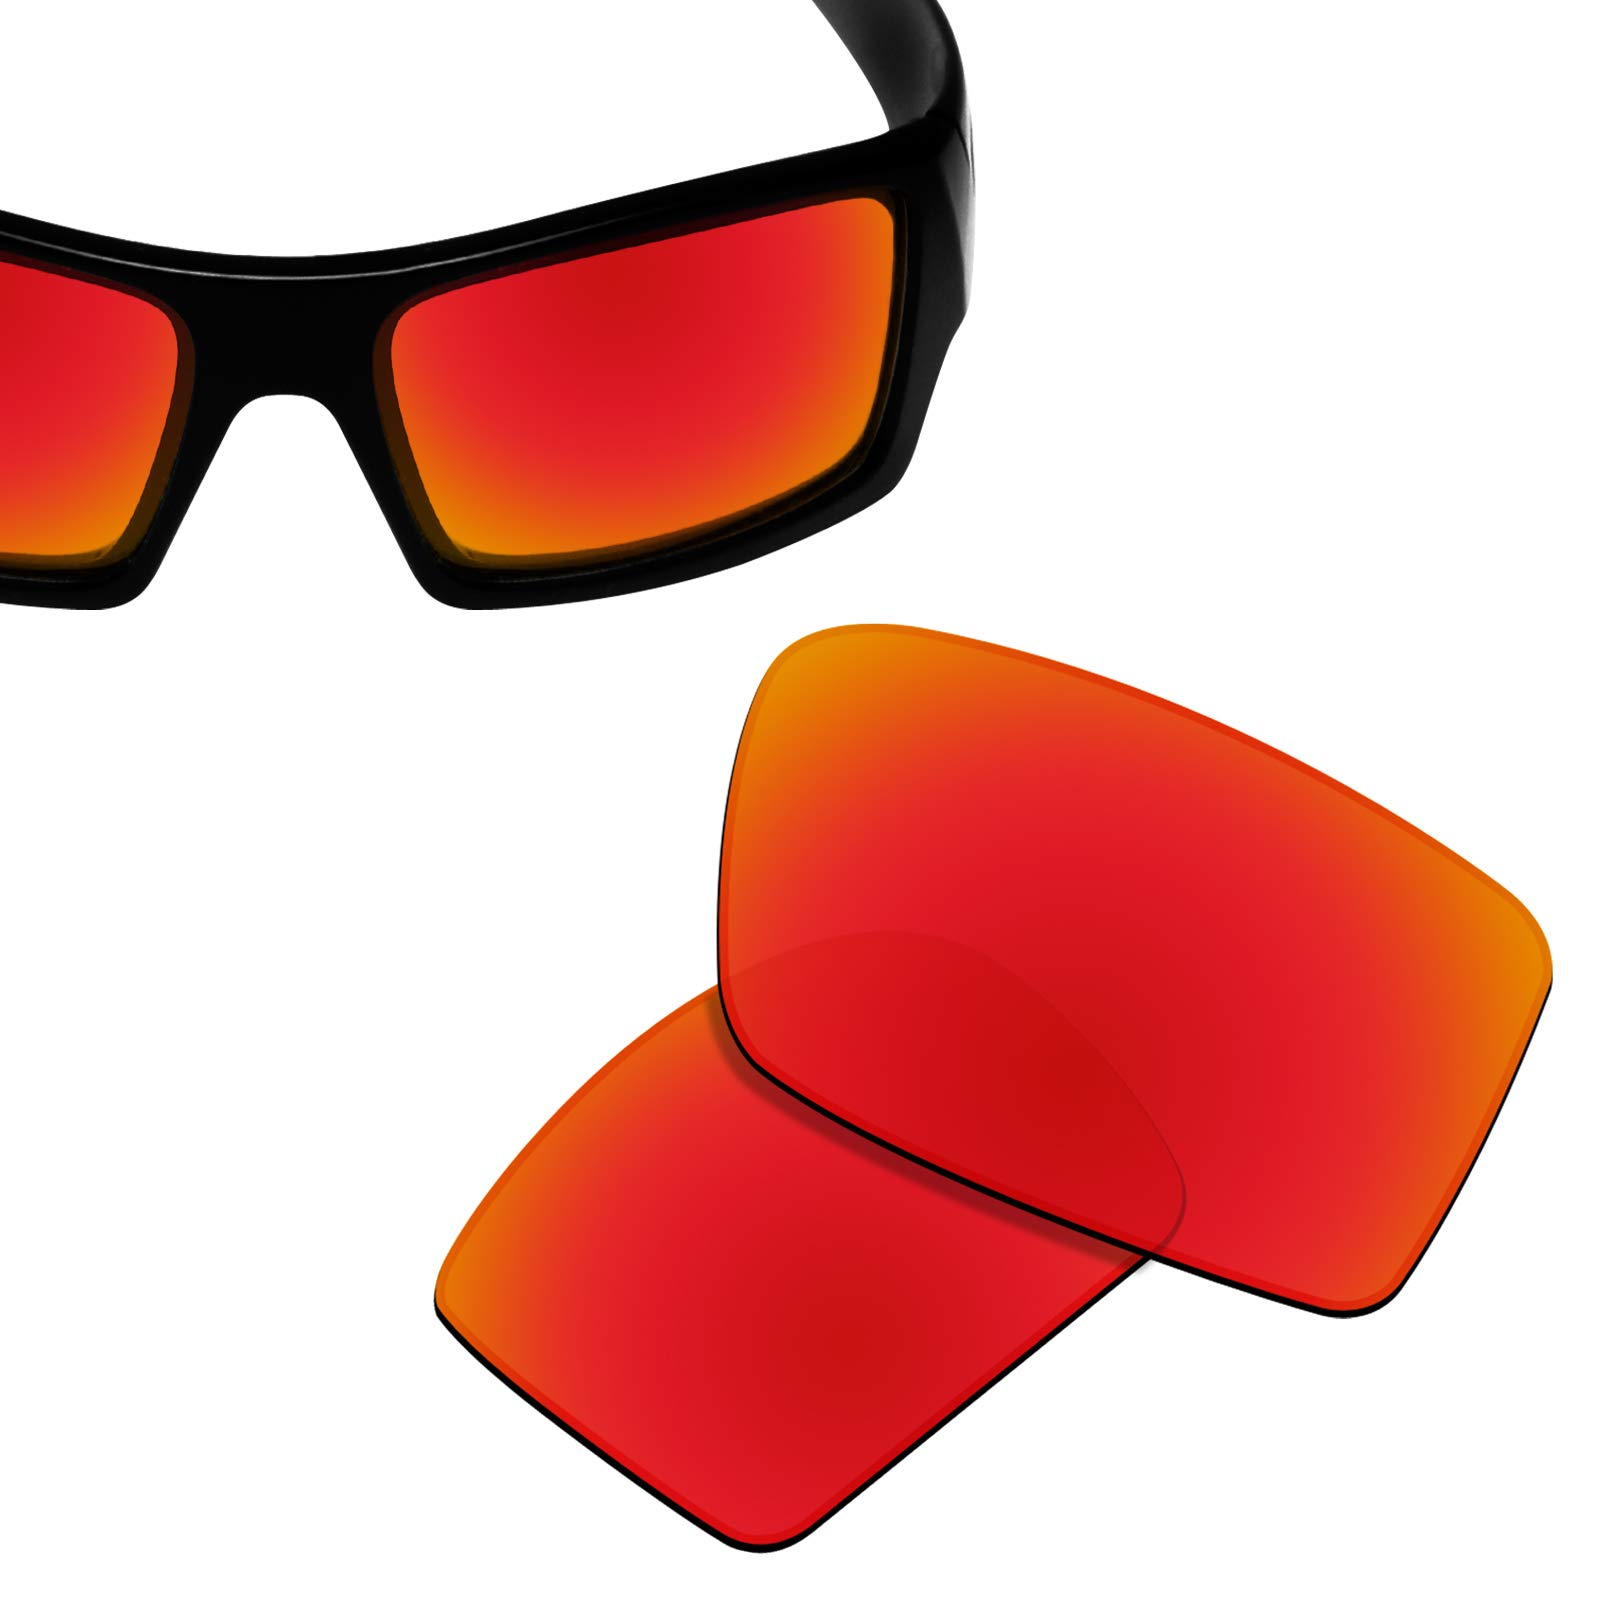 4e3a9d38dd New 1.8mm Thick UV400 Replacement Lenses for Oakley Gascan Sunglass -  Options product image